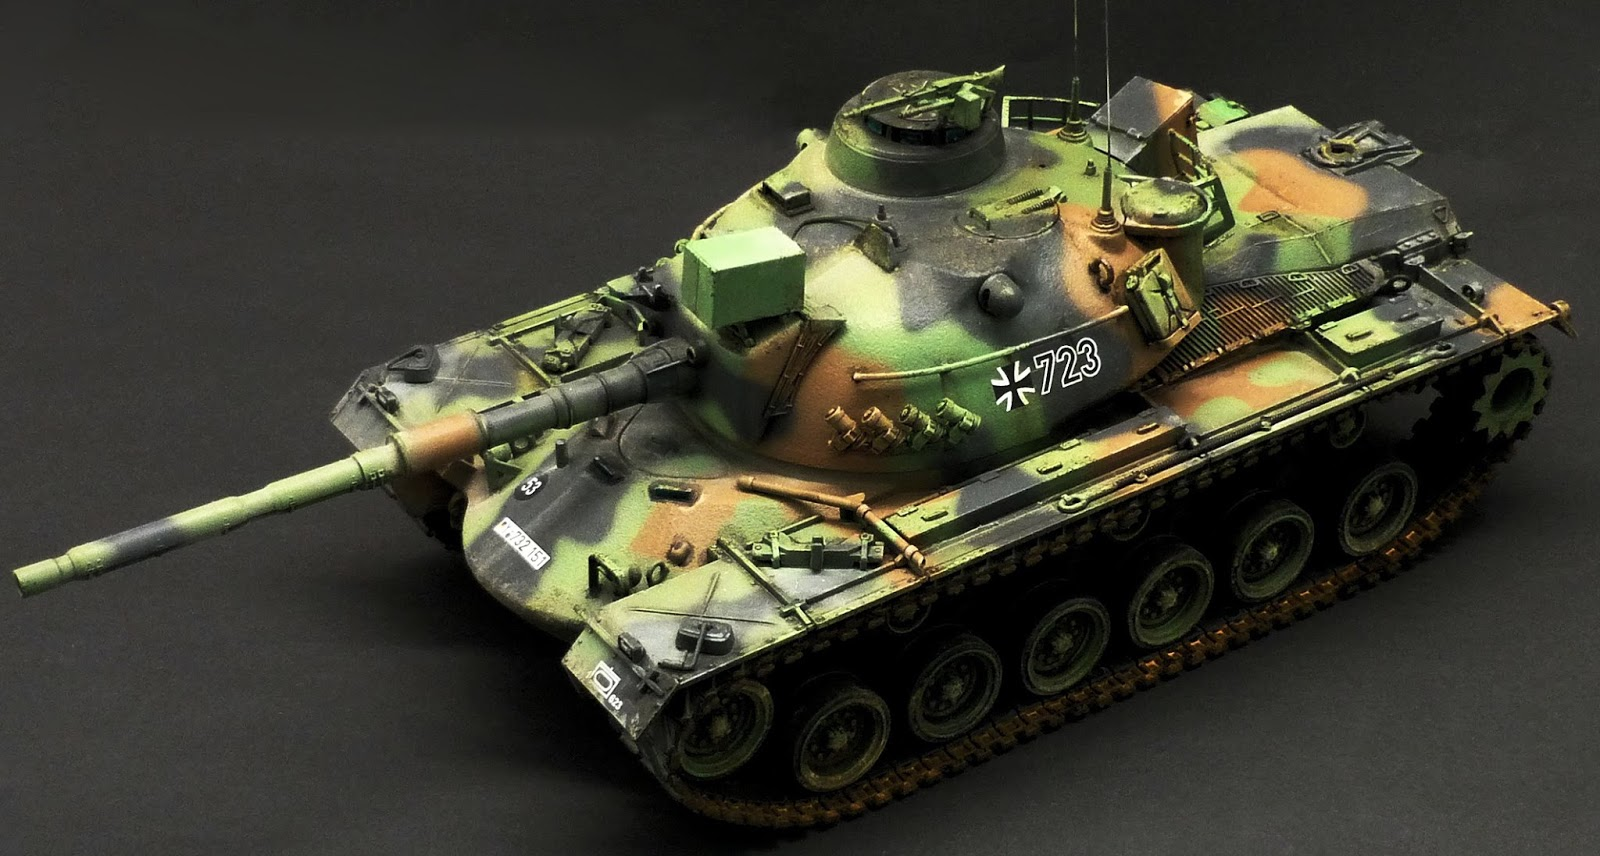 1/35 M48 A3 Patton (Tamiya) improved with Eduard and RBmodel parts ...